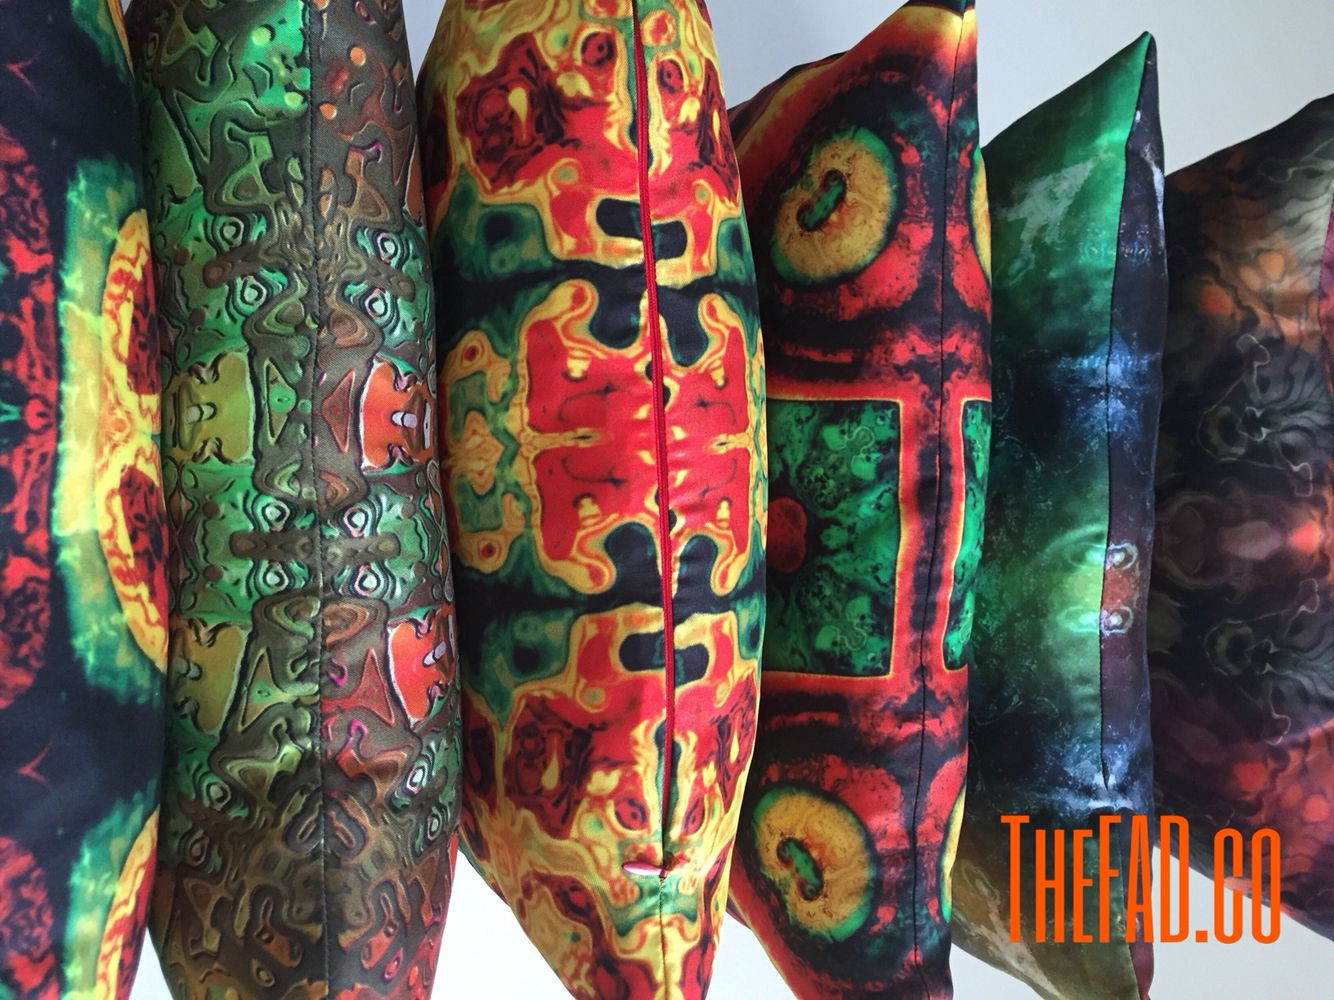 Silk Pillow by TheFAD.co http://www.zet.com/tasarimci/thefadco